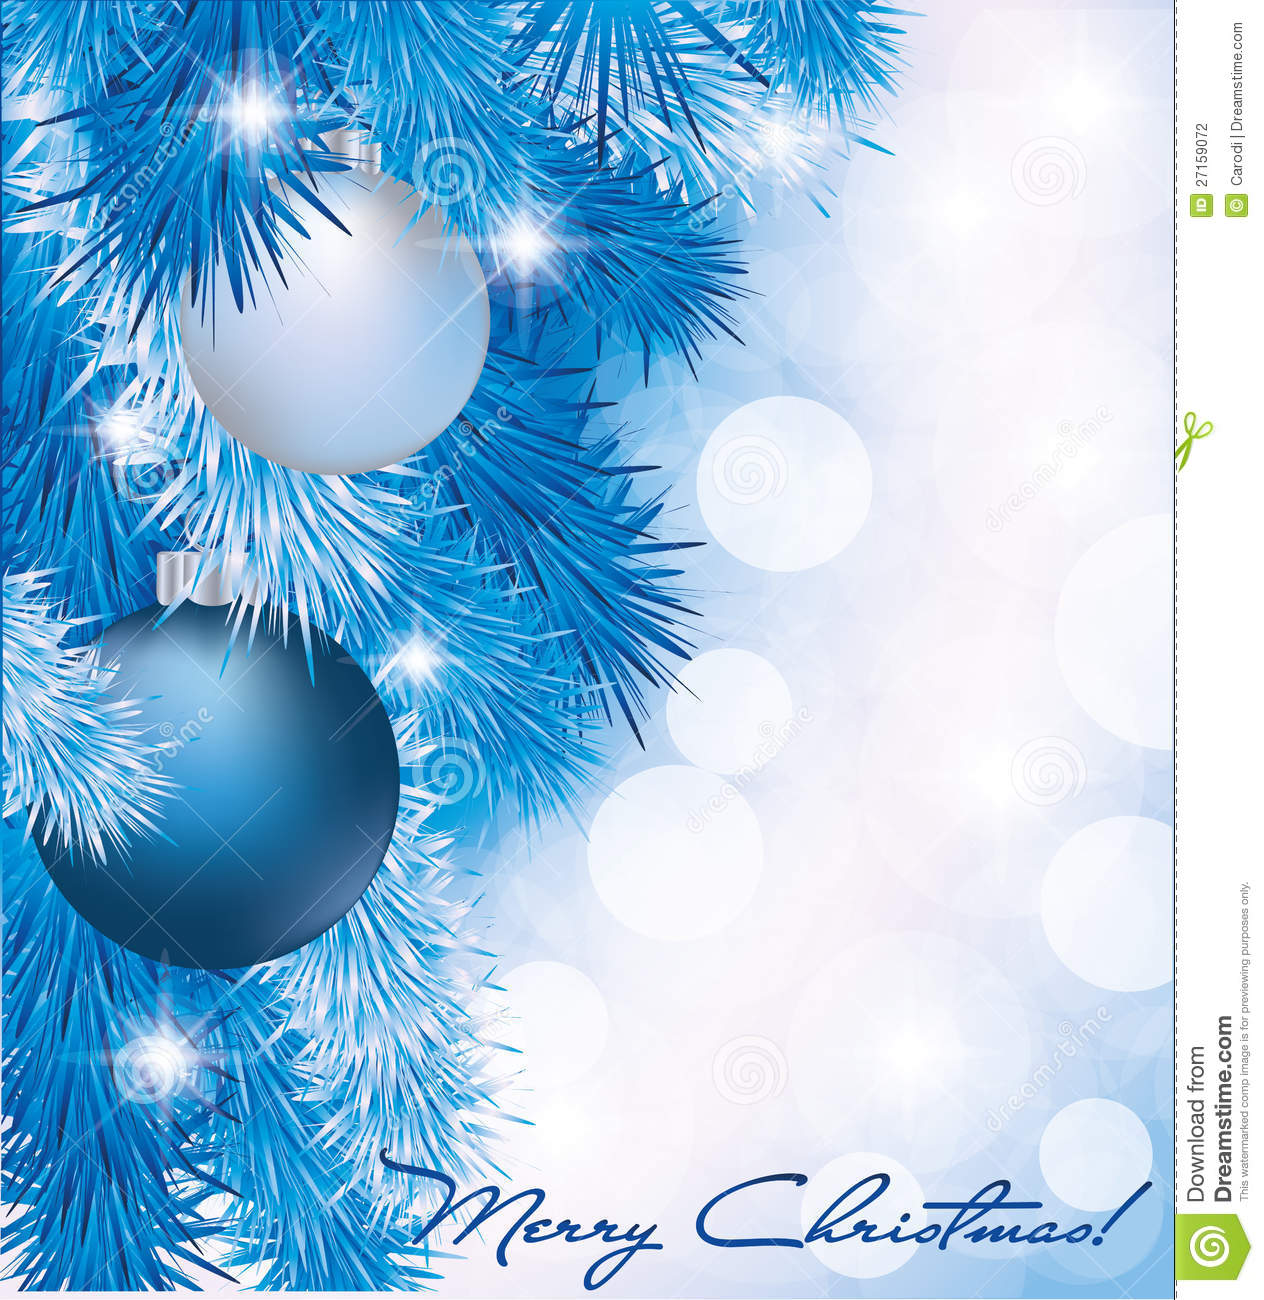 Christmas Card With Blue Silver Balls Stock Vector - Illustration of ...